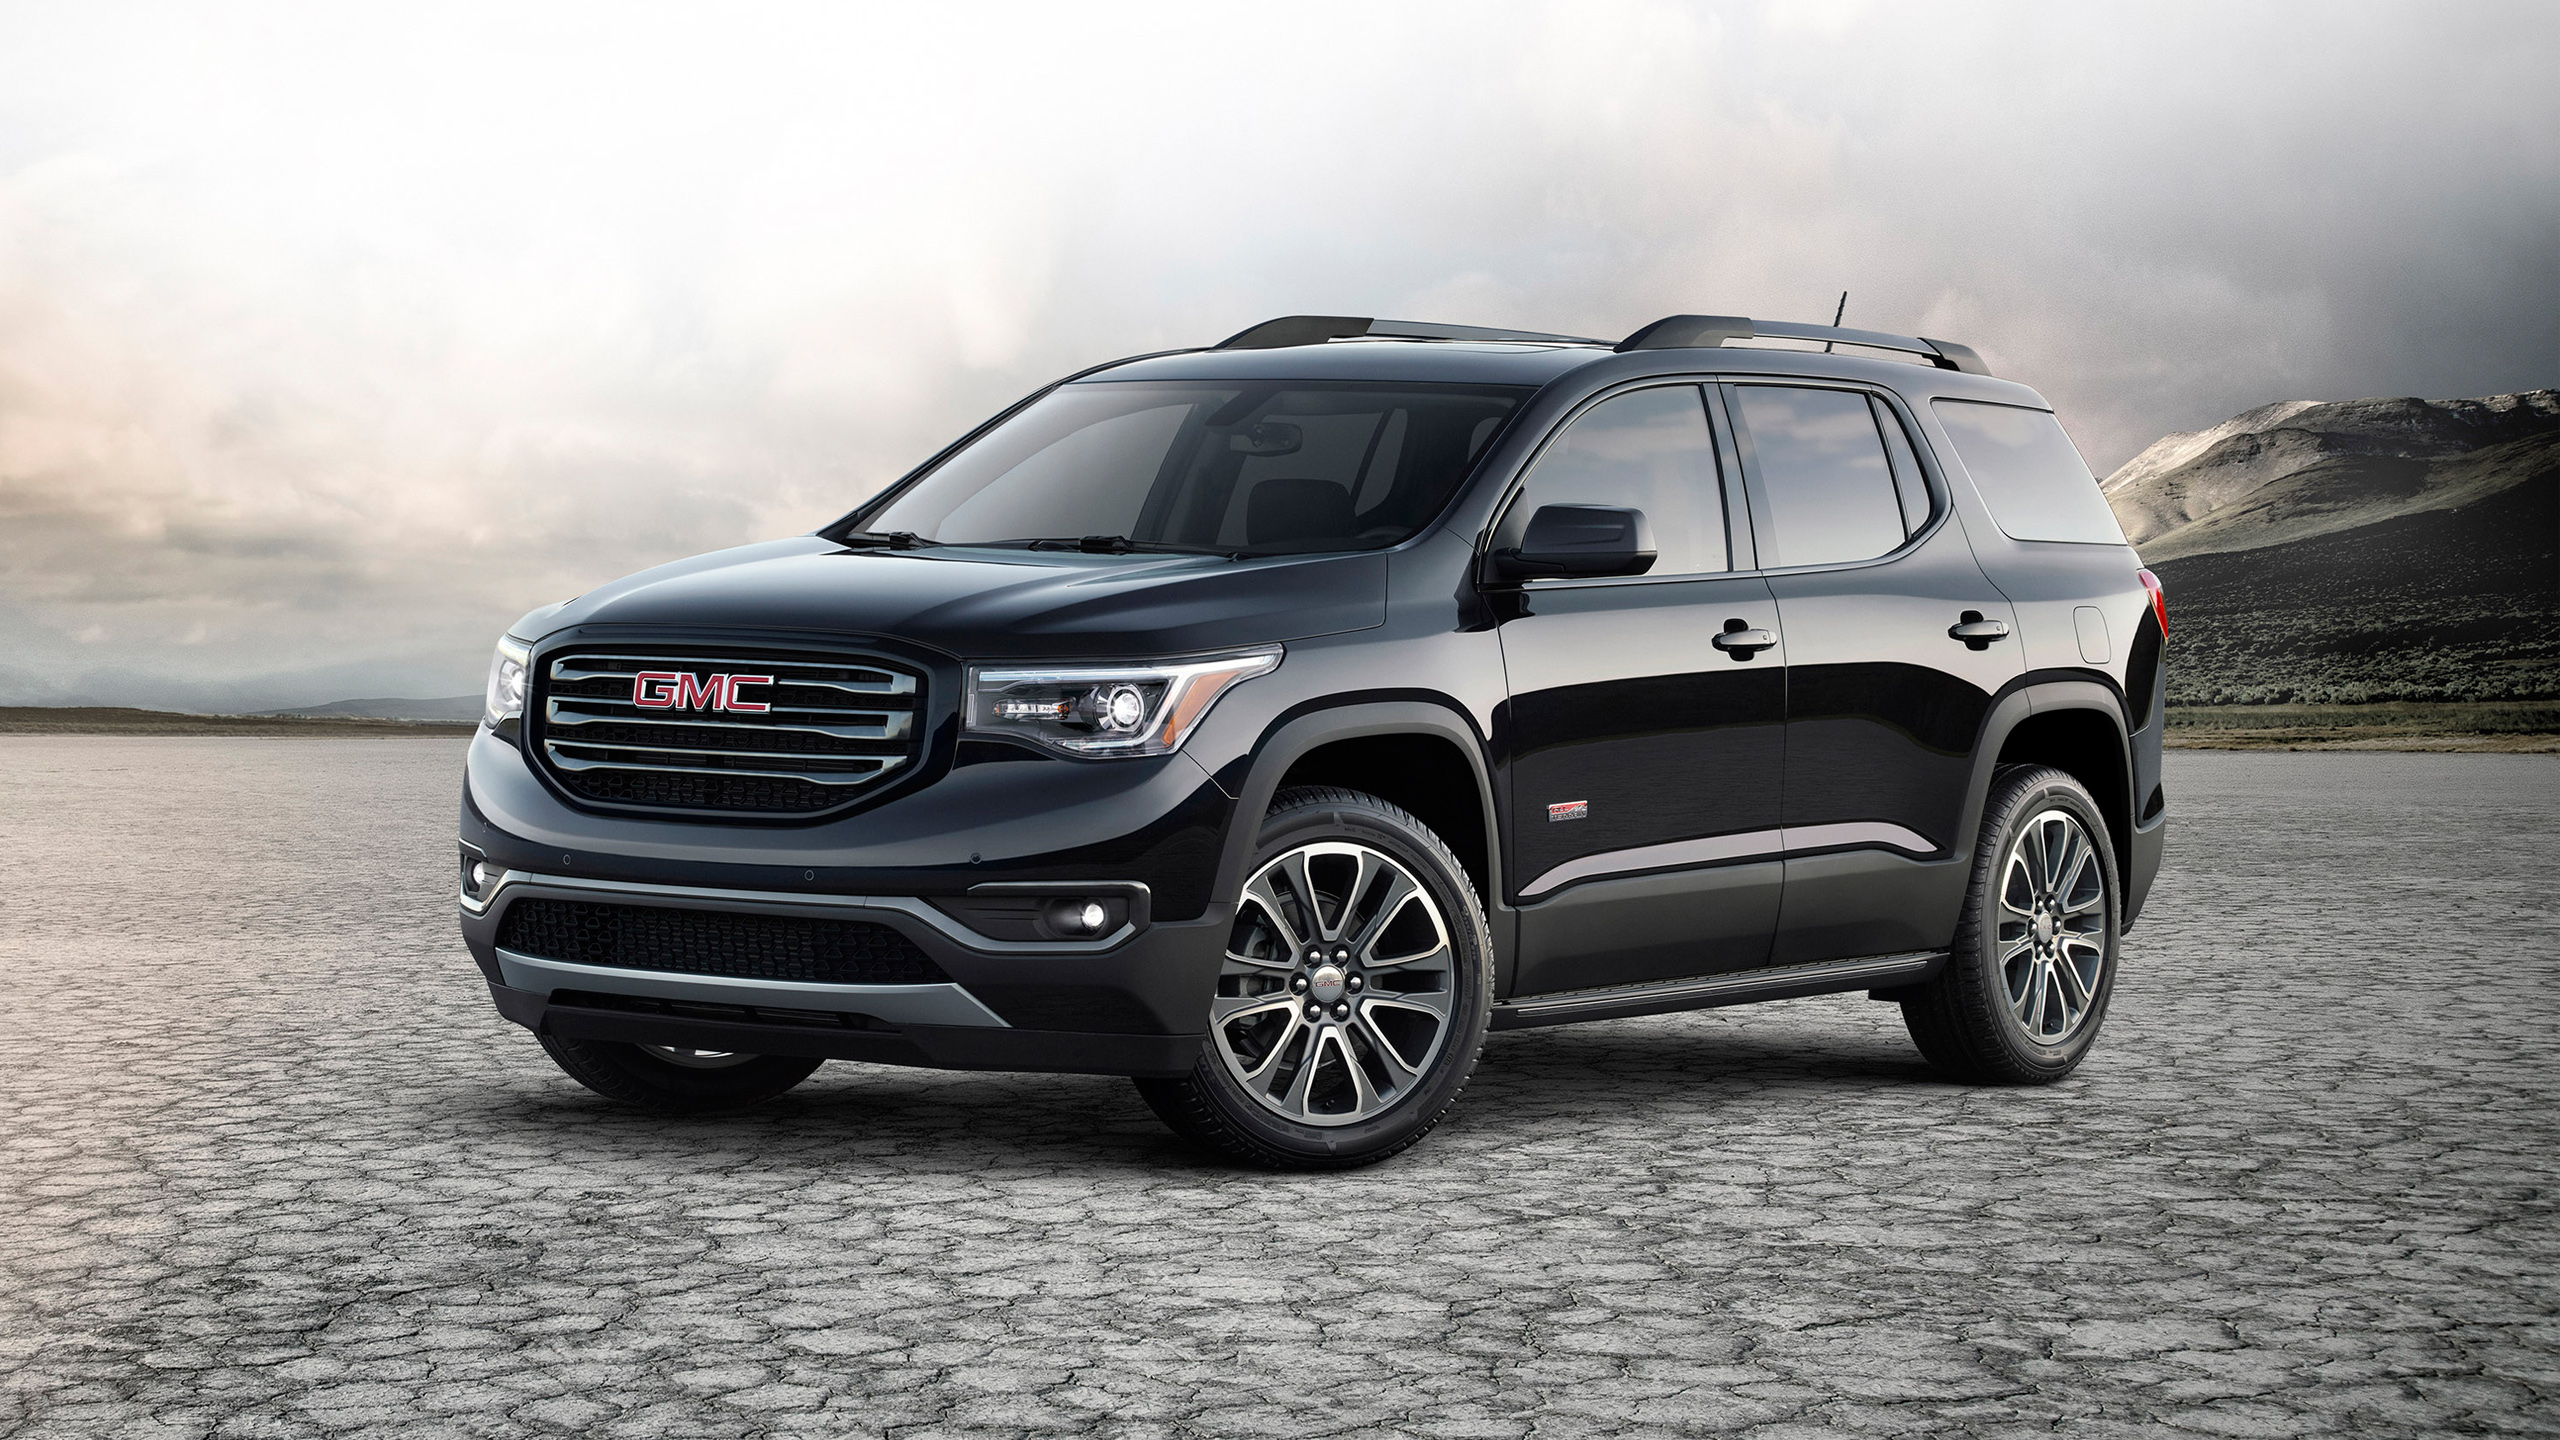 GMC Wallpapers and Background Images   stmednet 2560x1440